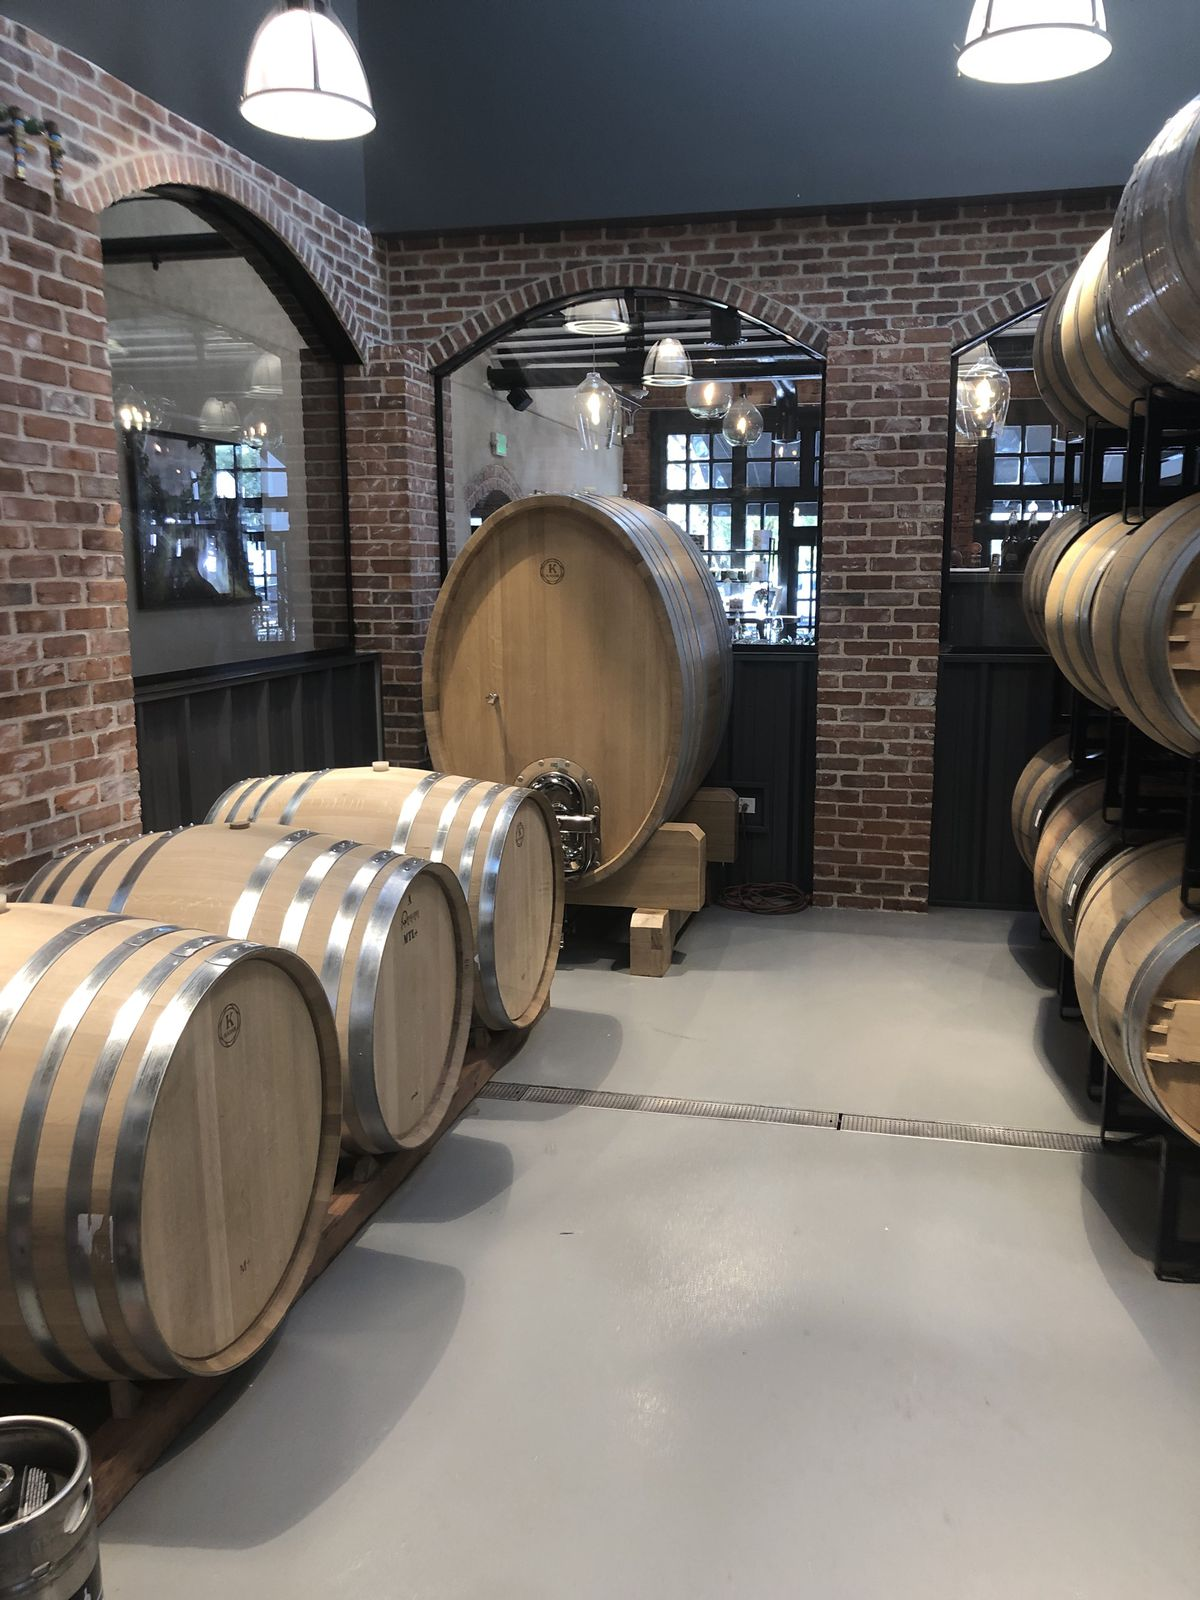 A photo of the barrel room at Carboy, which contains several barrels including a very large one in the corner